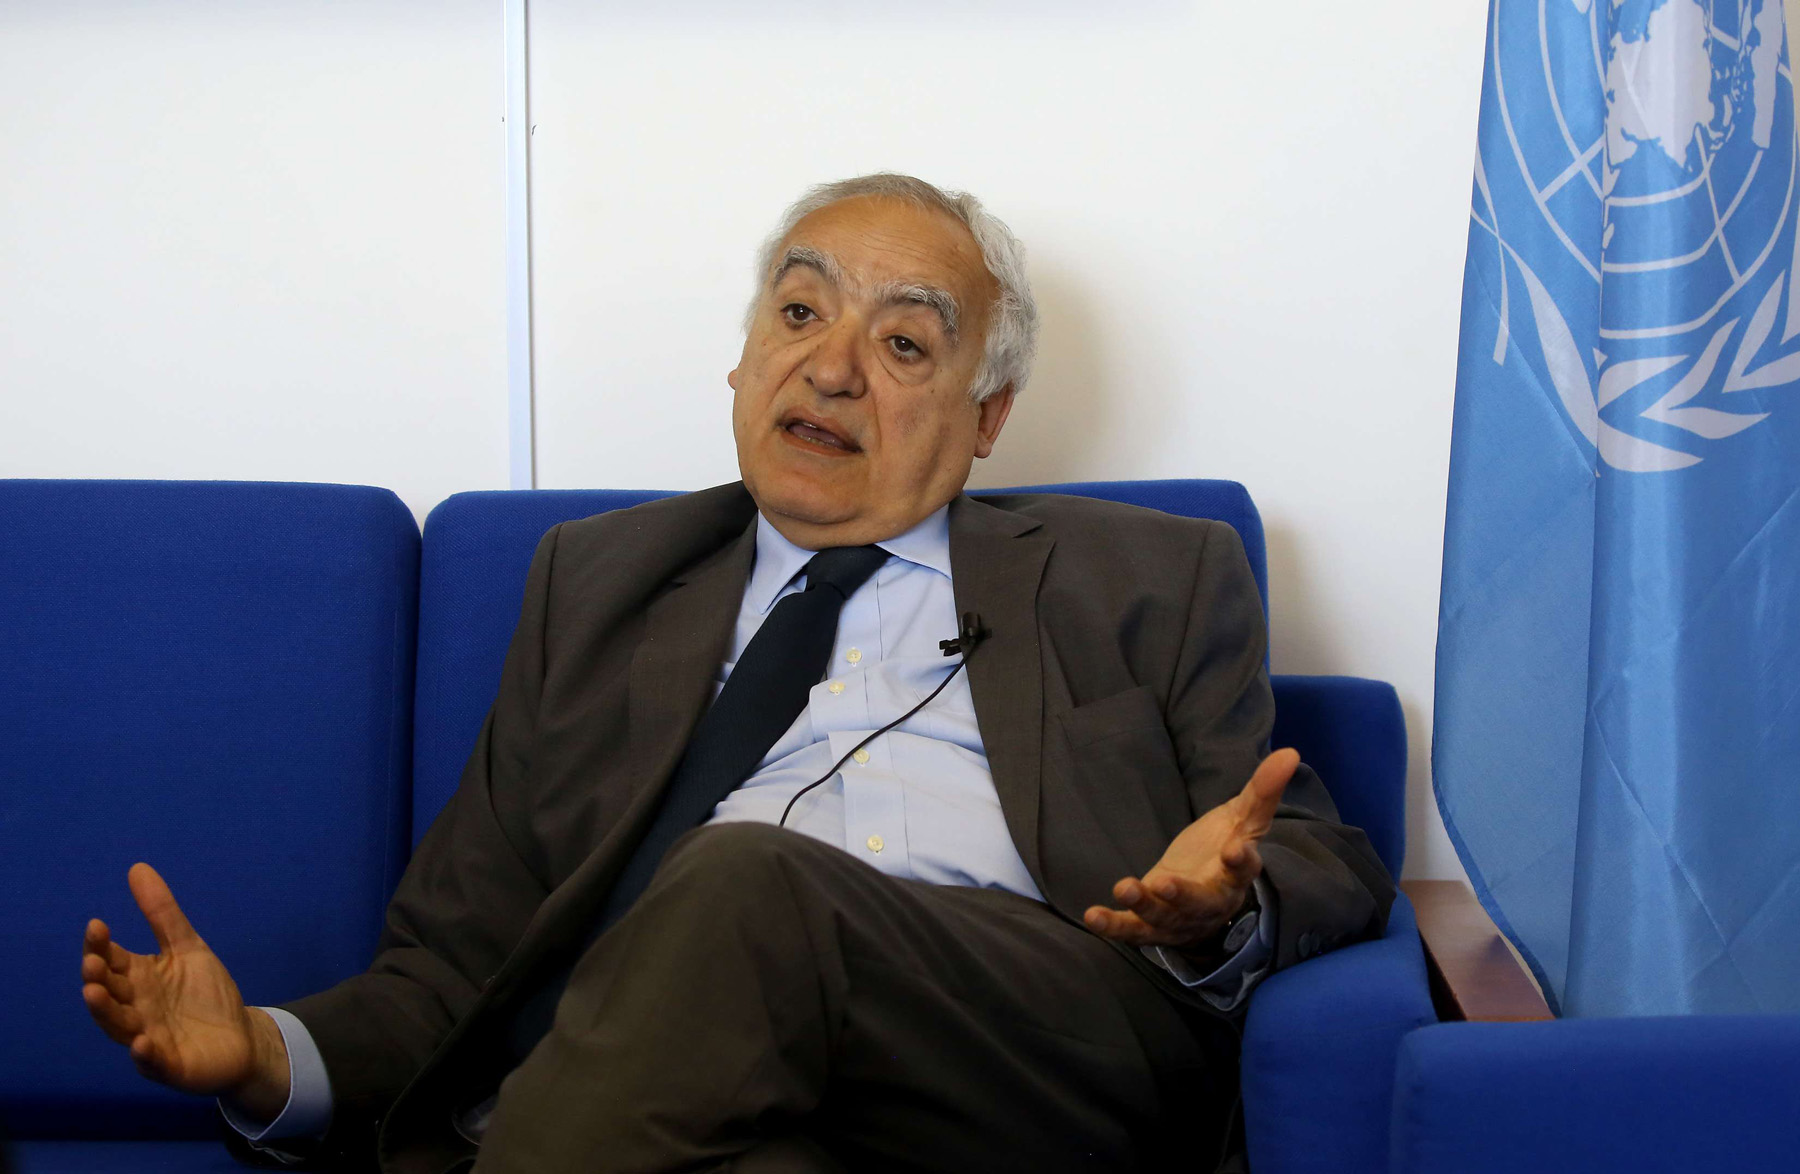 Low hopes. Ghassan Salame, UN special envoy for Libya, speaks during an interview at his office in Tripoli. (AFP)